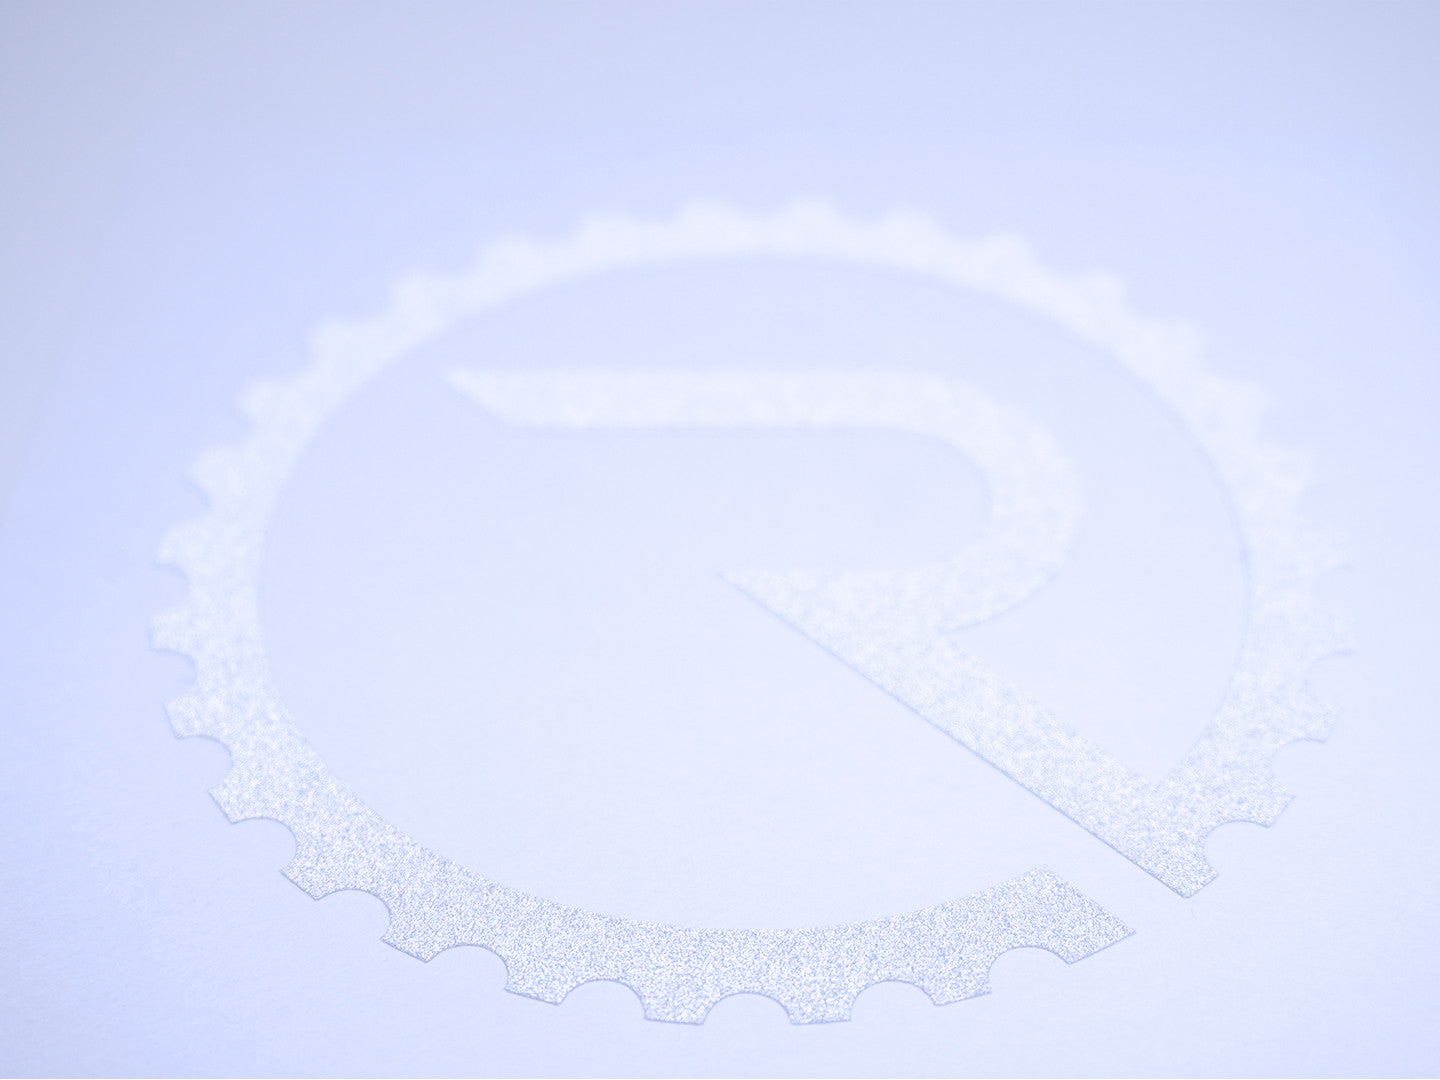 Geared R Decal - Reflective White - Ride Apparel Co.